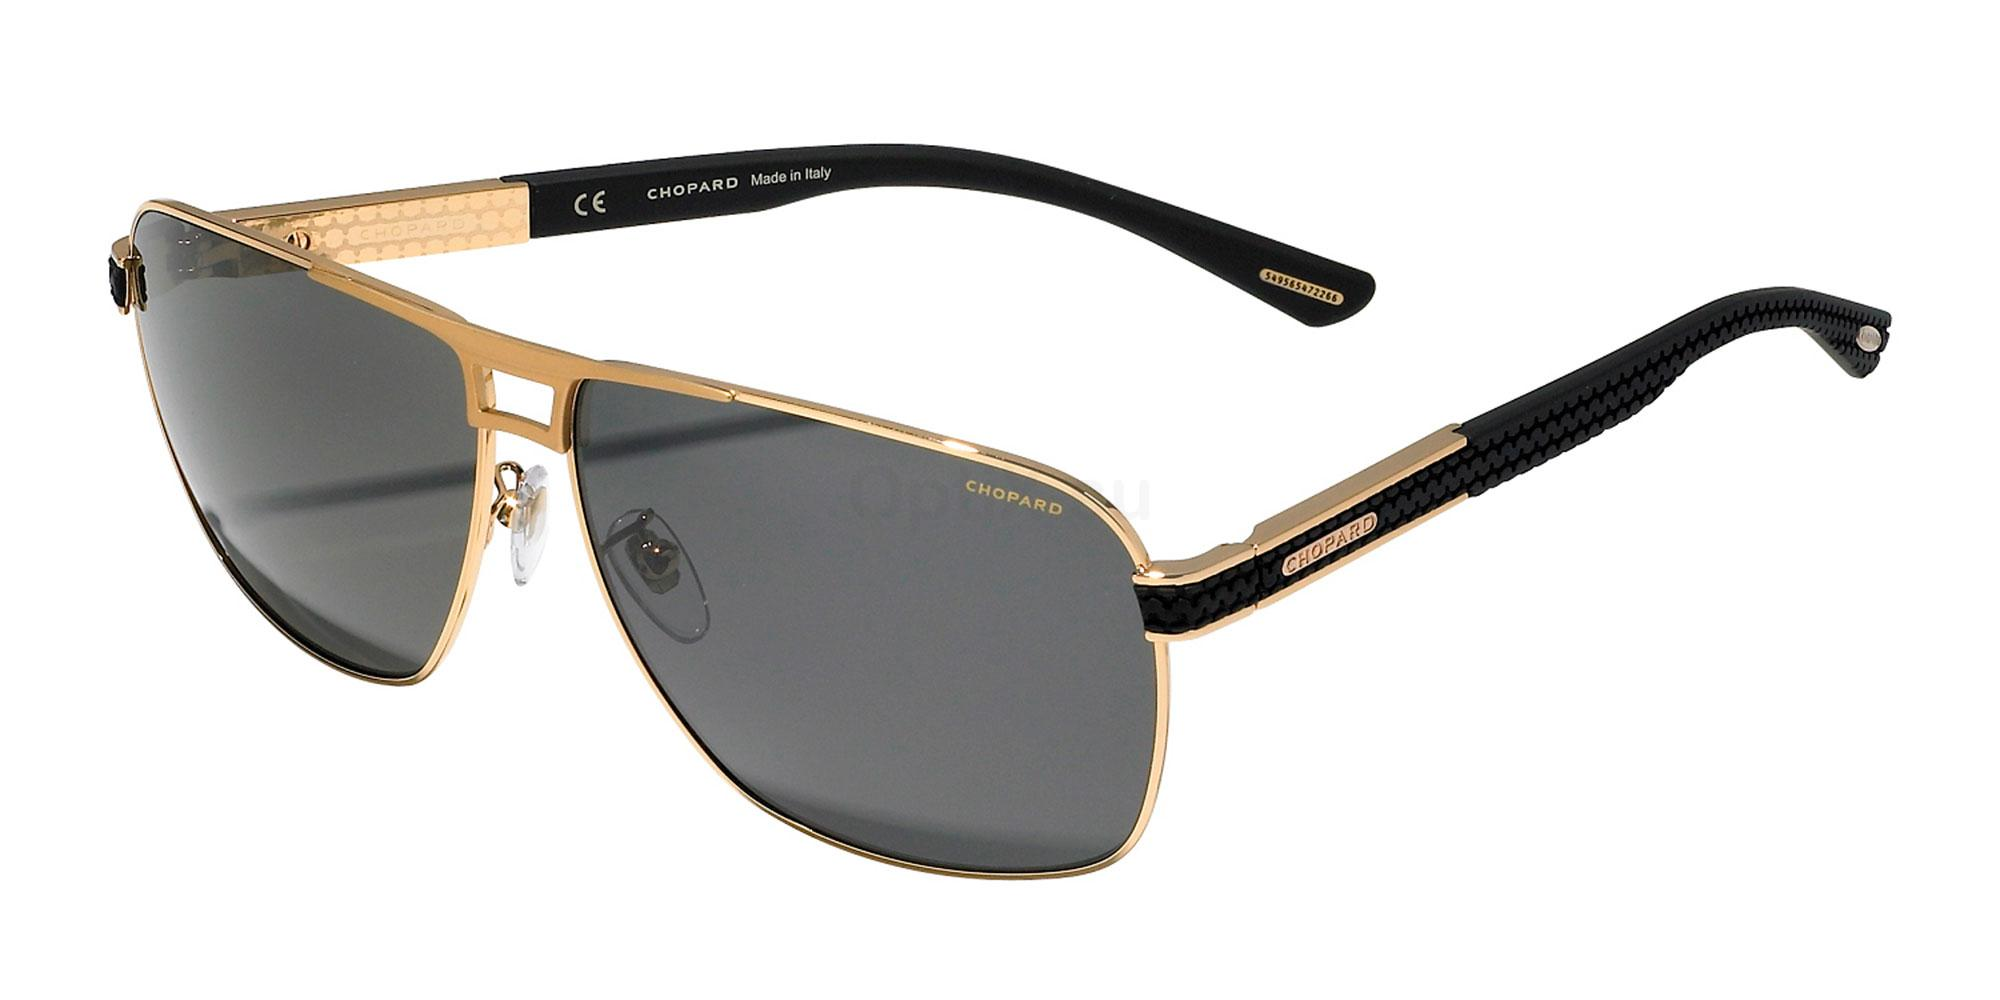 349P SCHB79 Sunglasses, Chopard